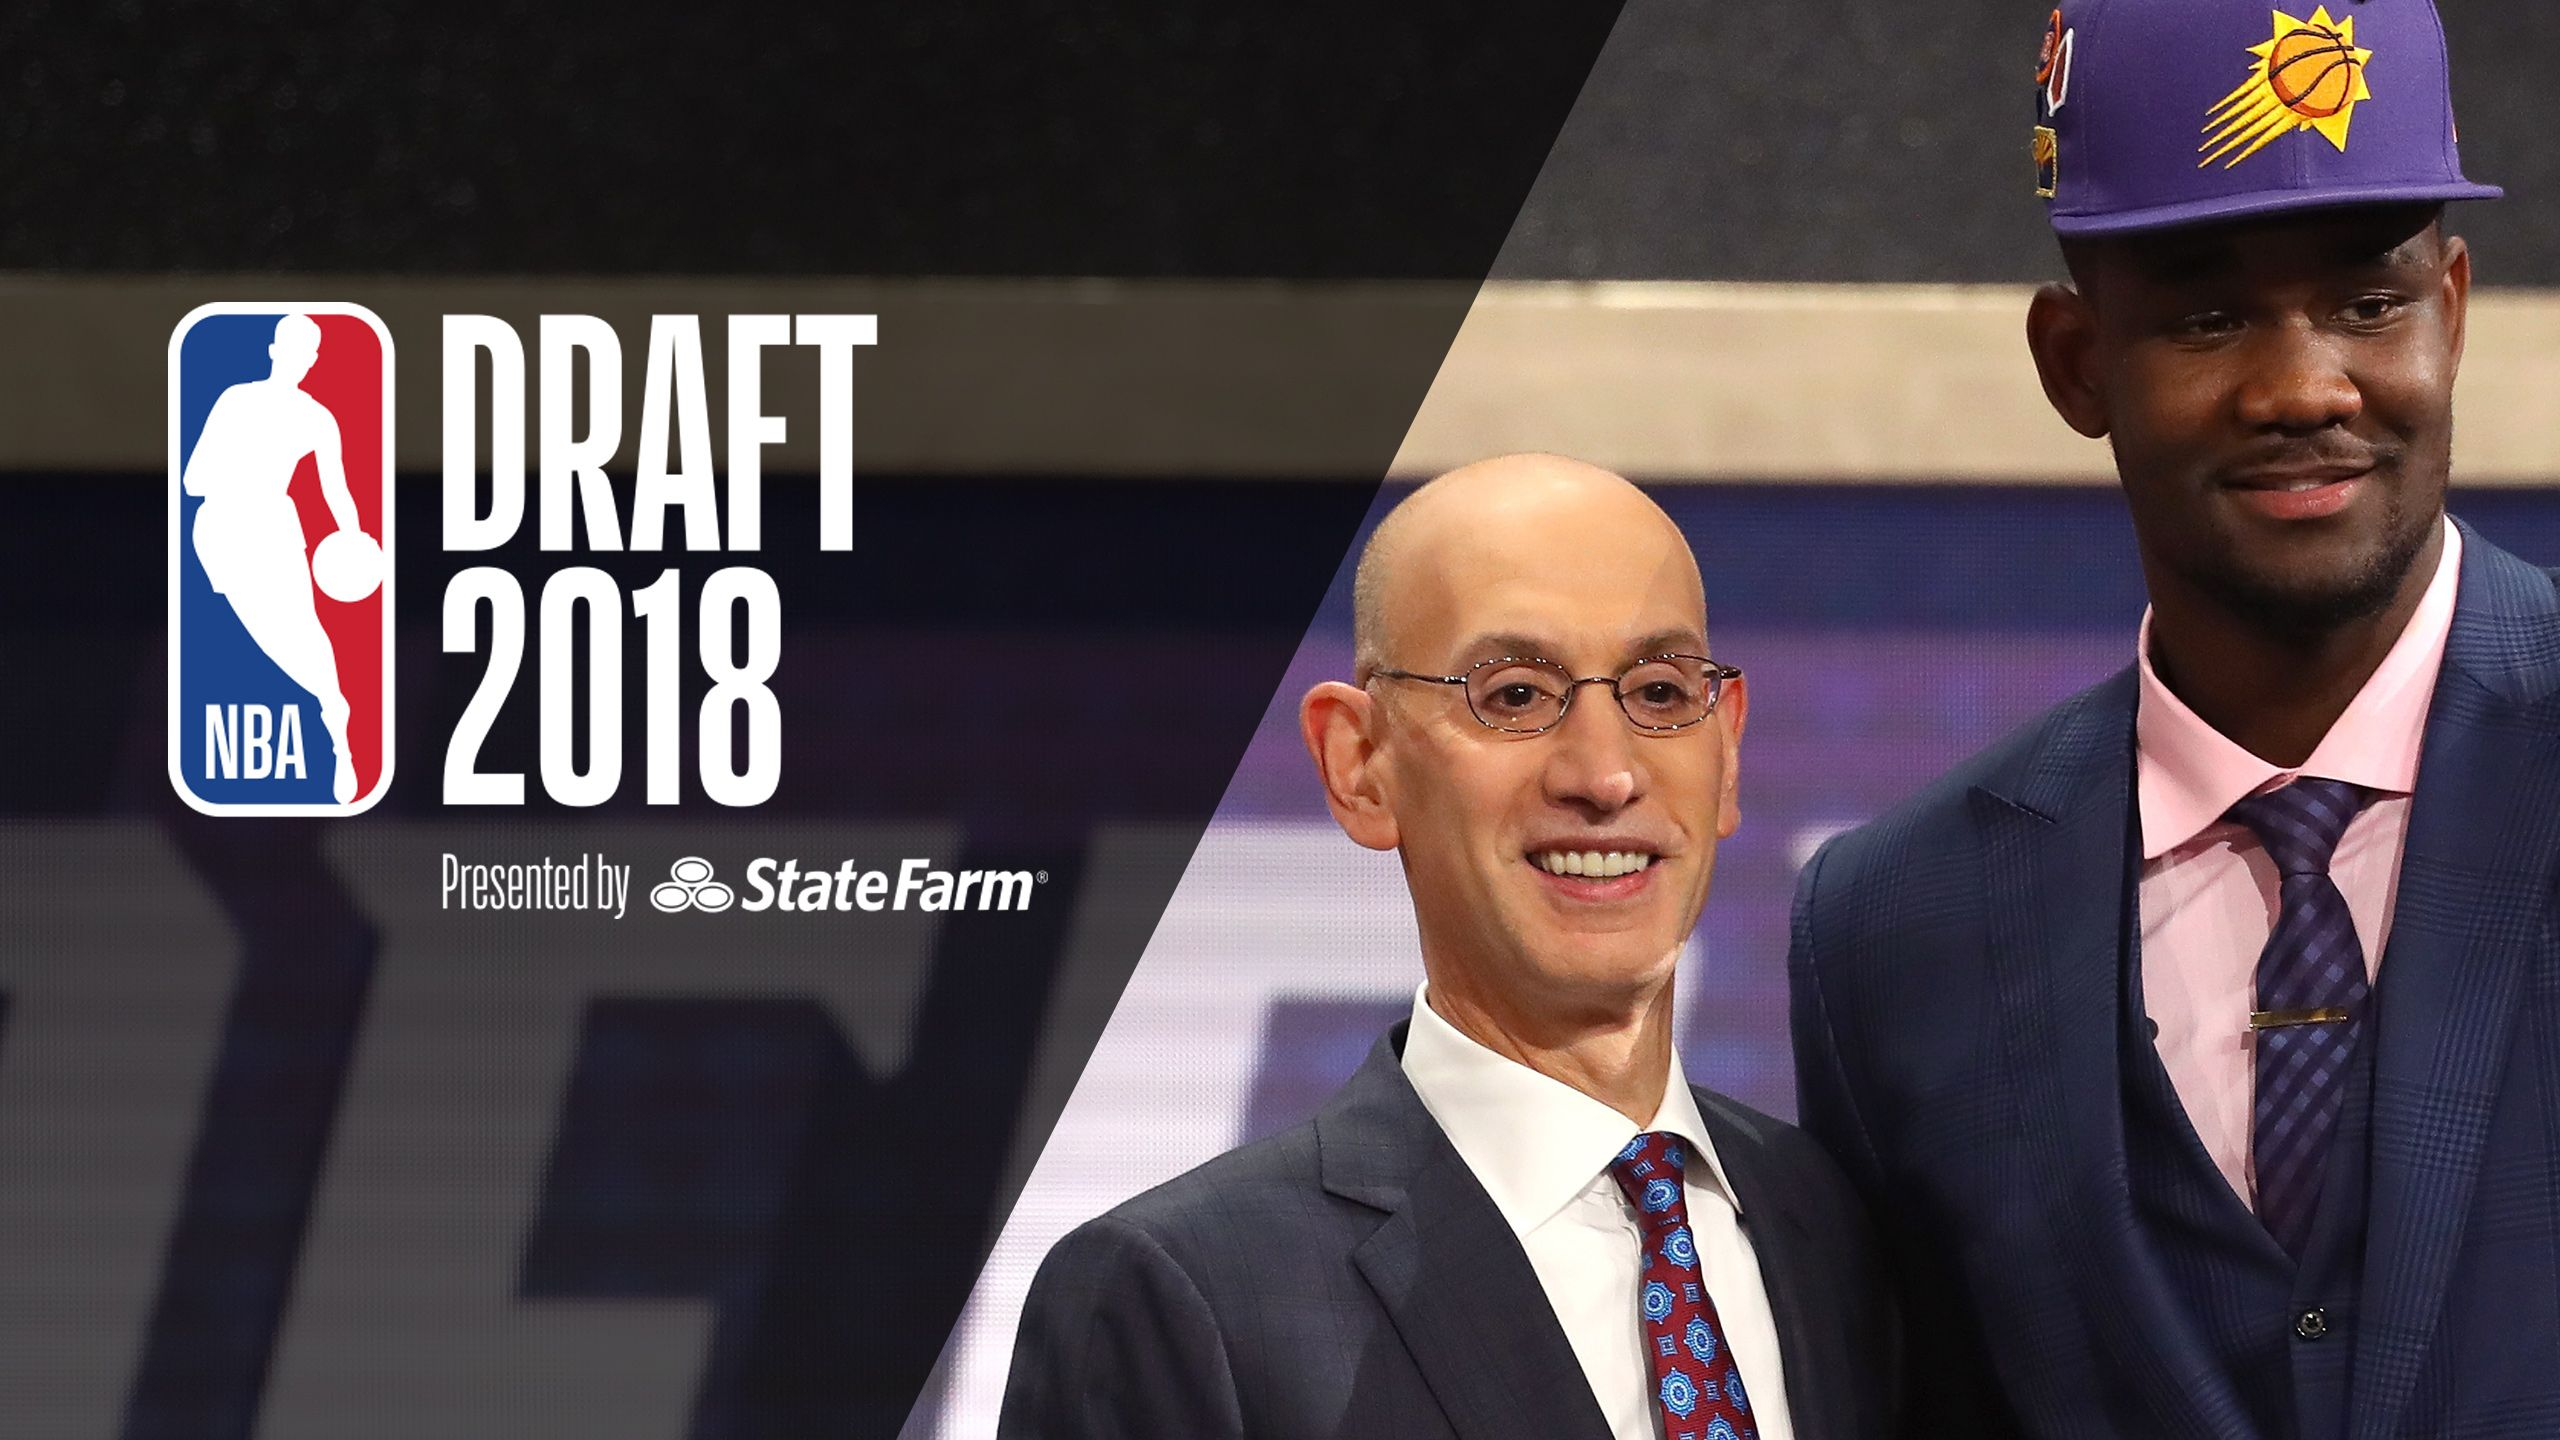 NBA Draft 2018 Presented by State Farm